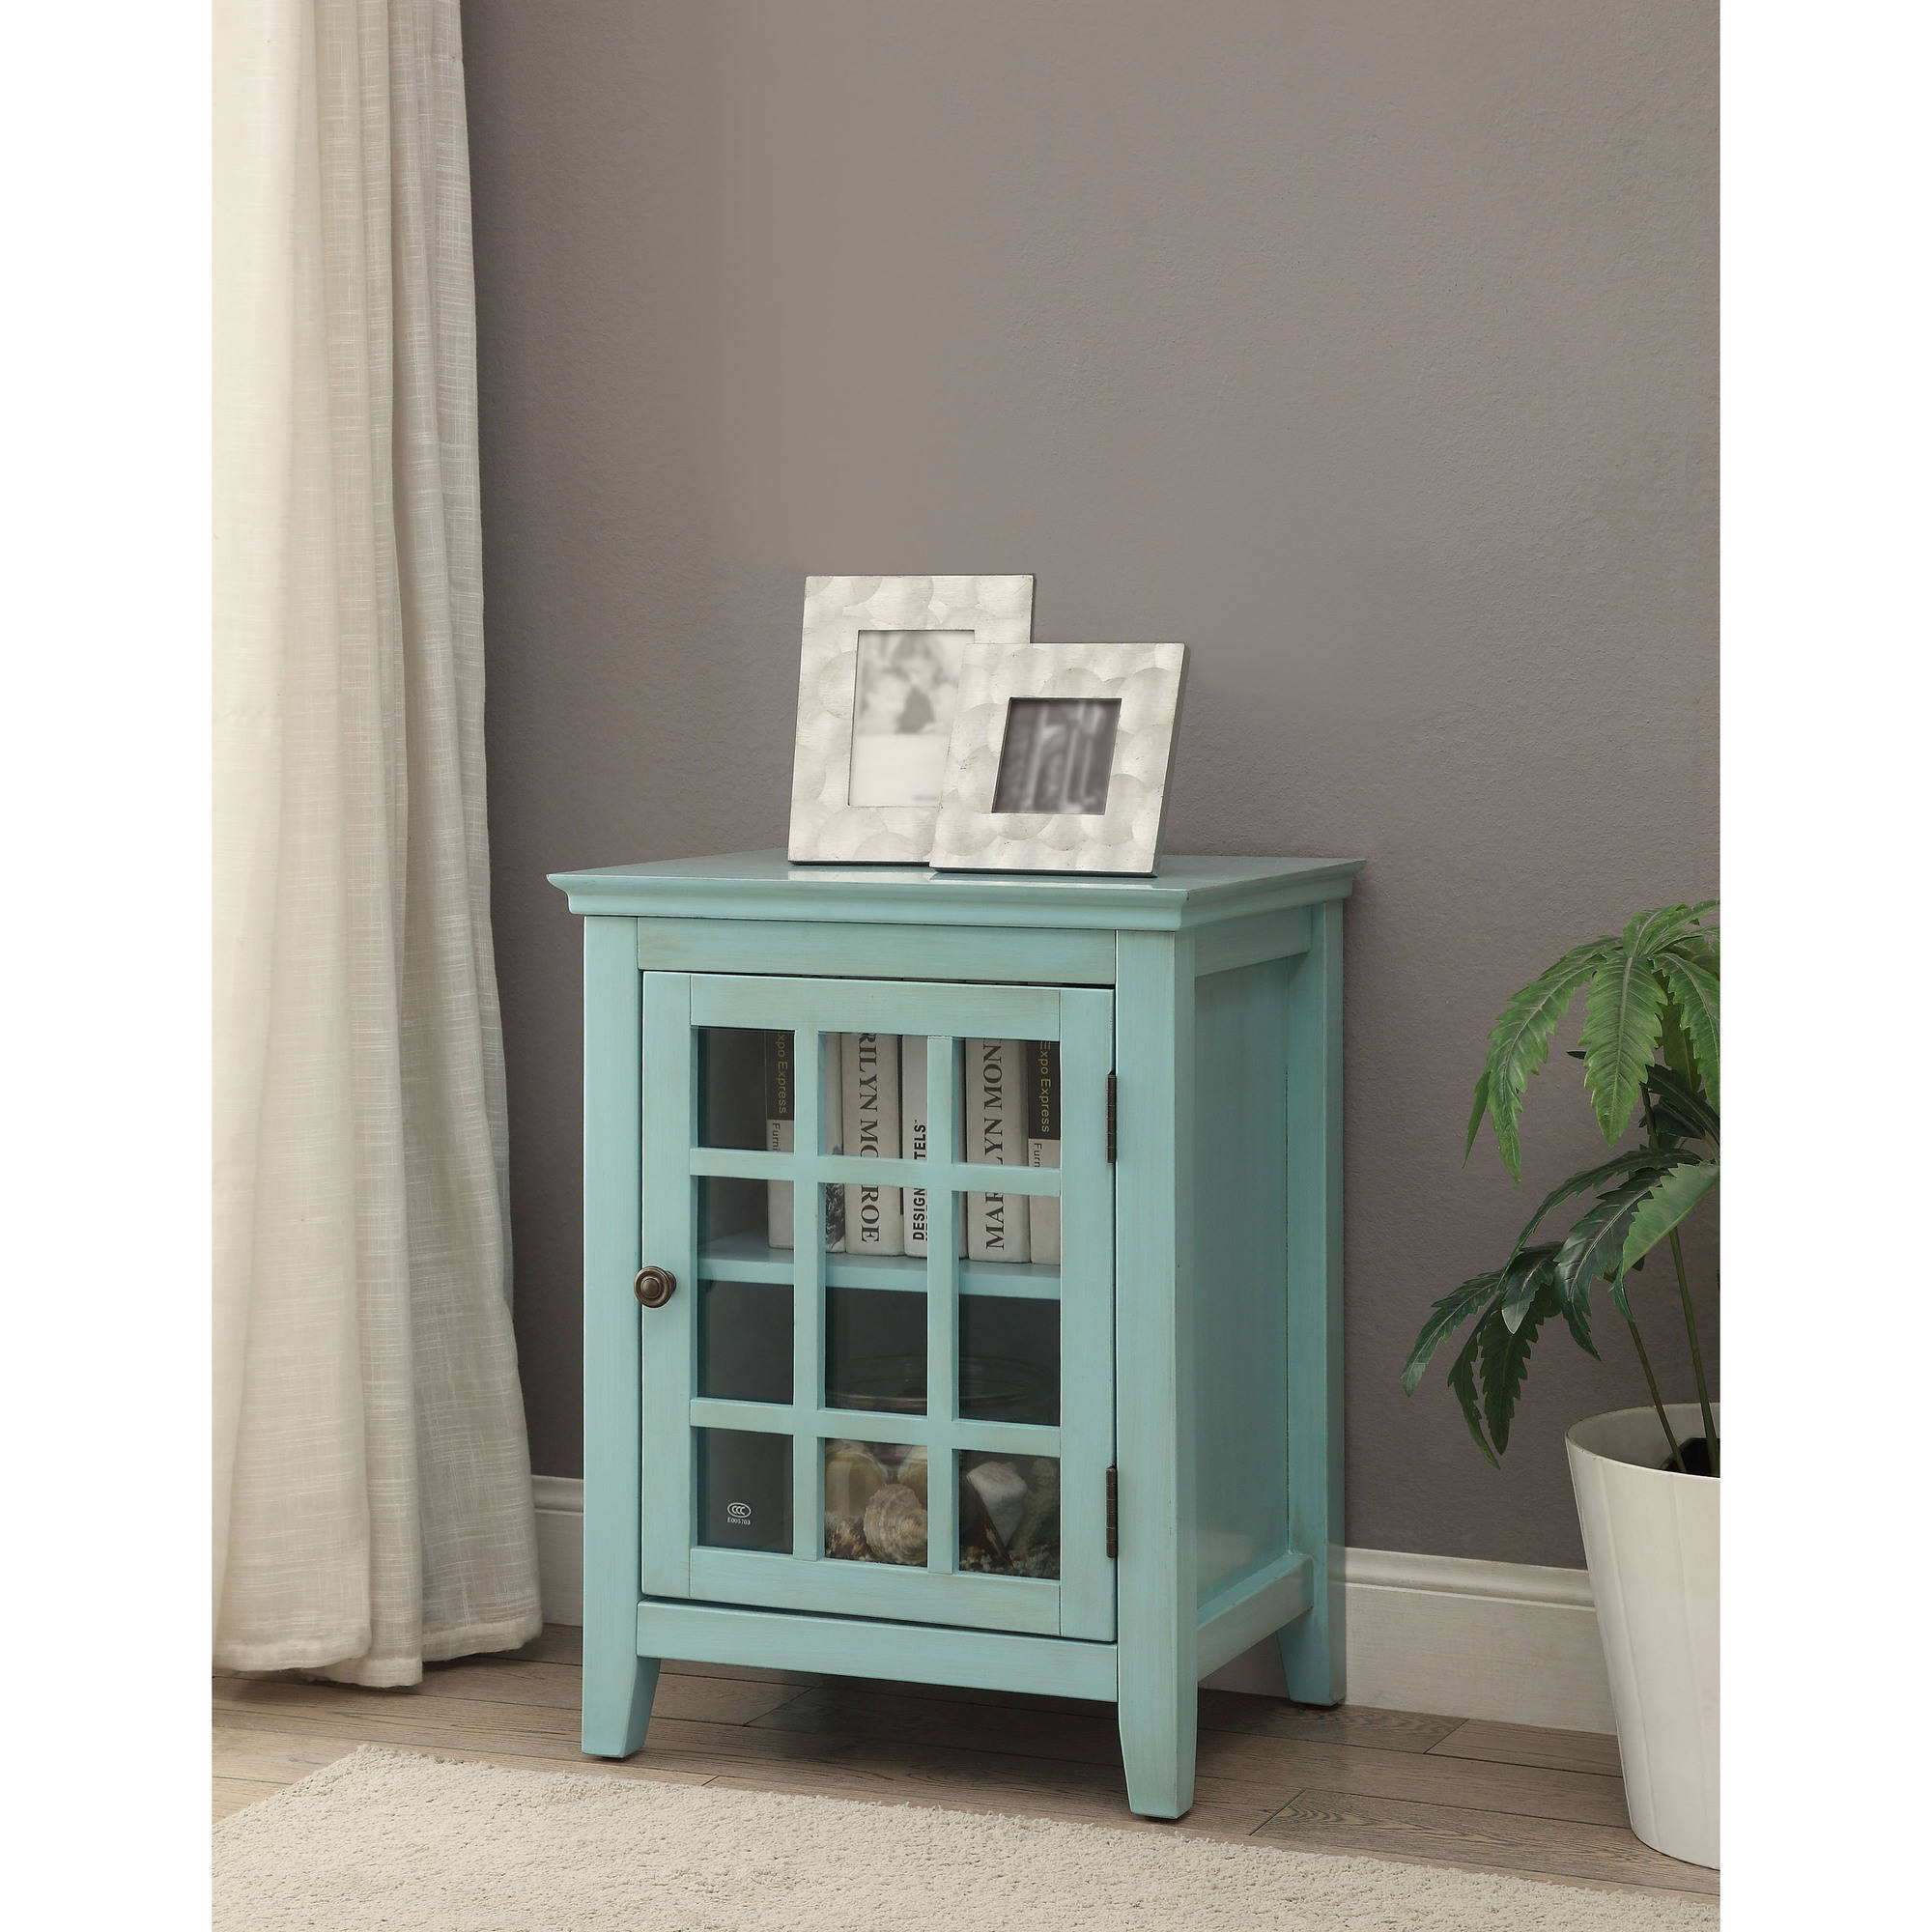 Linon Home Largo Antique Single Door Cabinet, Multiple Colors